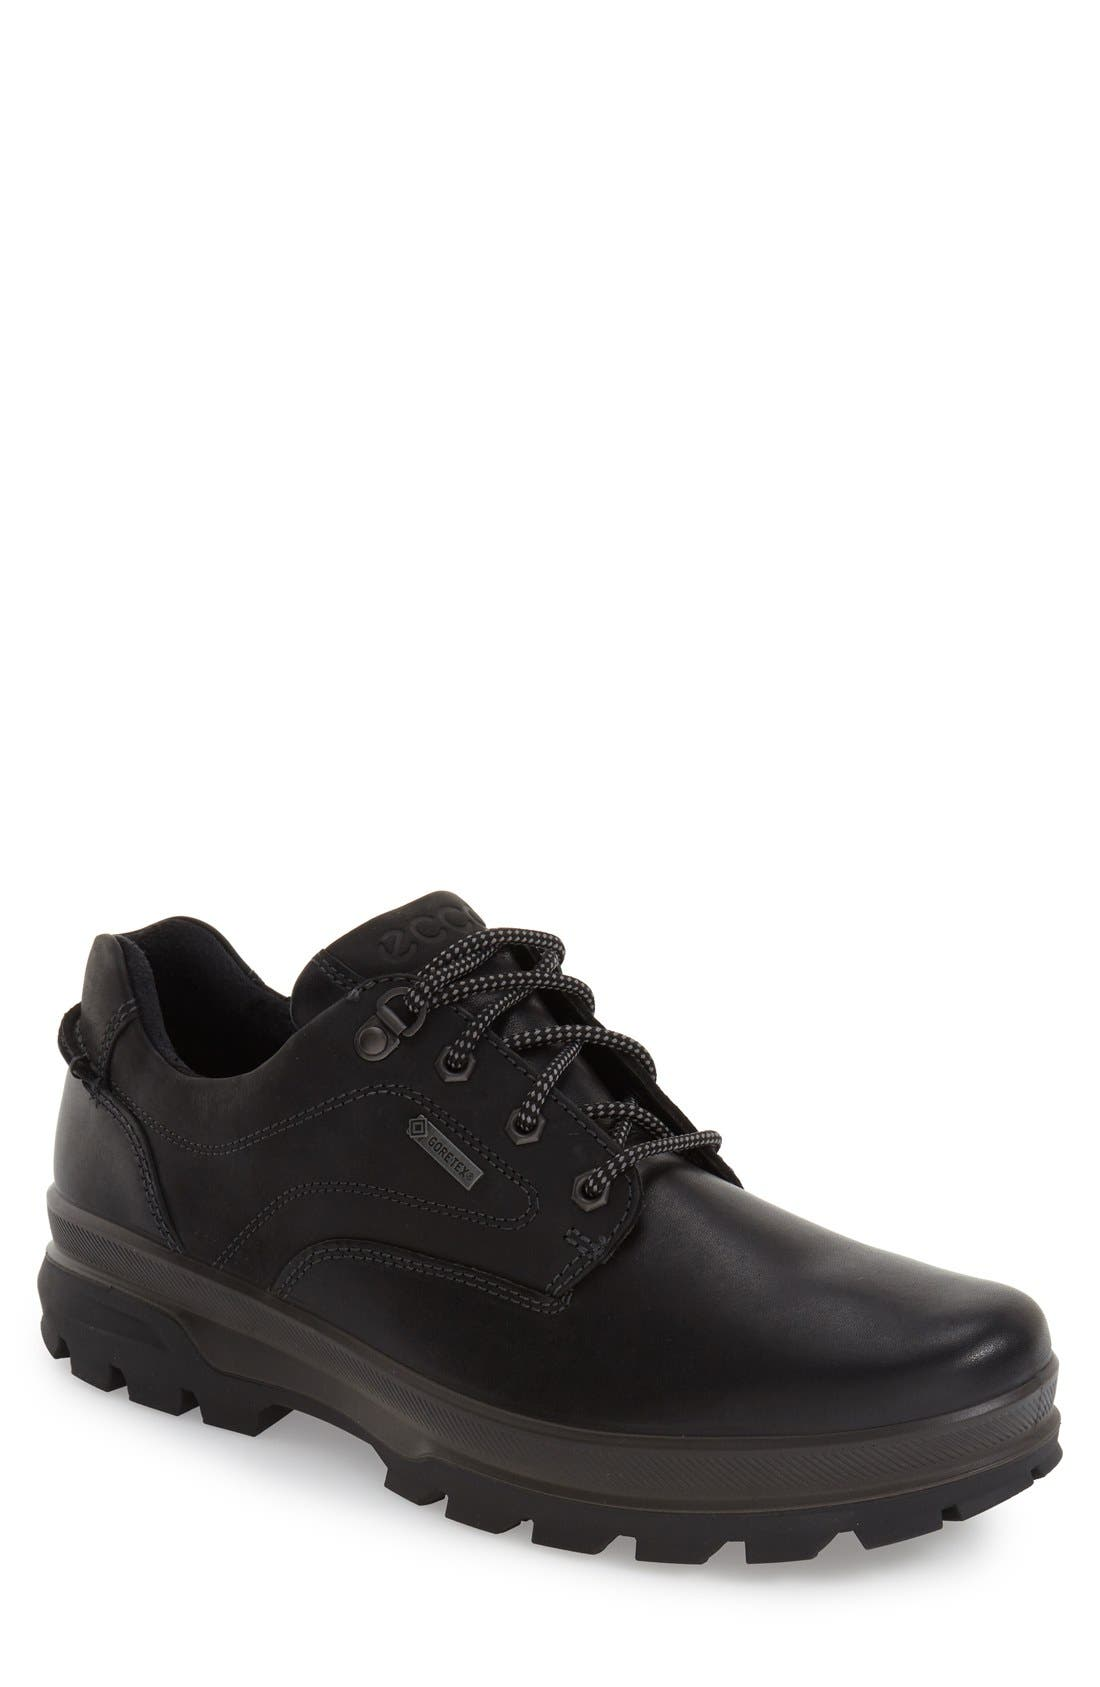 'Rugged Track GTX' Oxford,                         Main,                         color, Black/ Black Leather